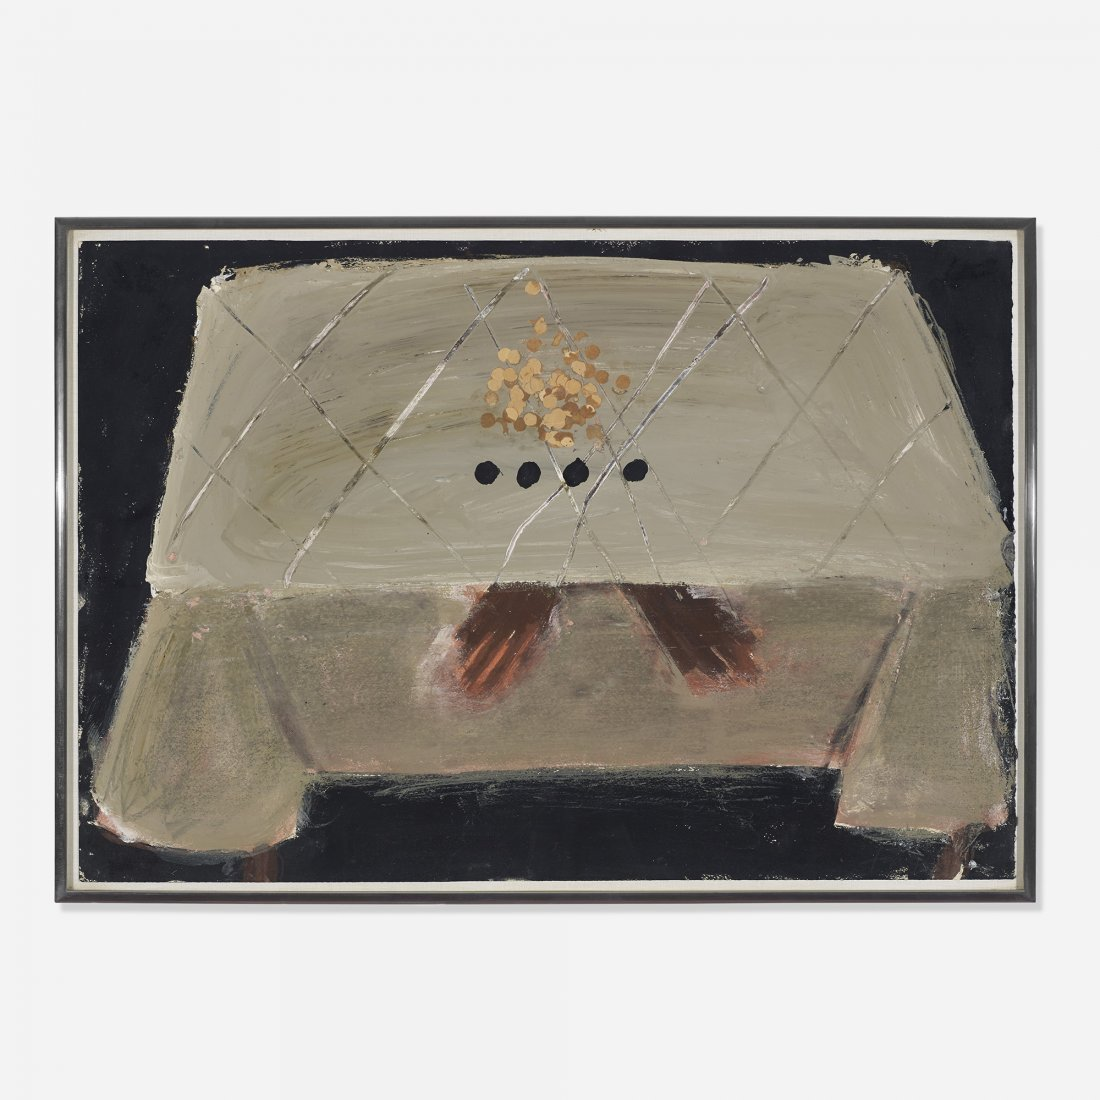 Antoni Tàpies Table with Black Spots